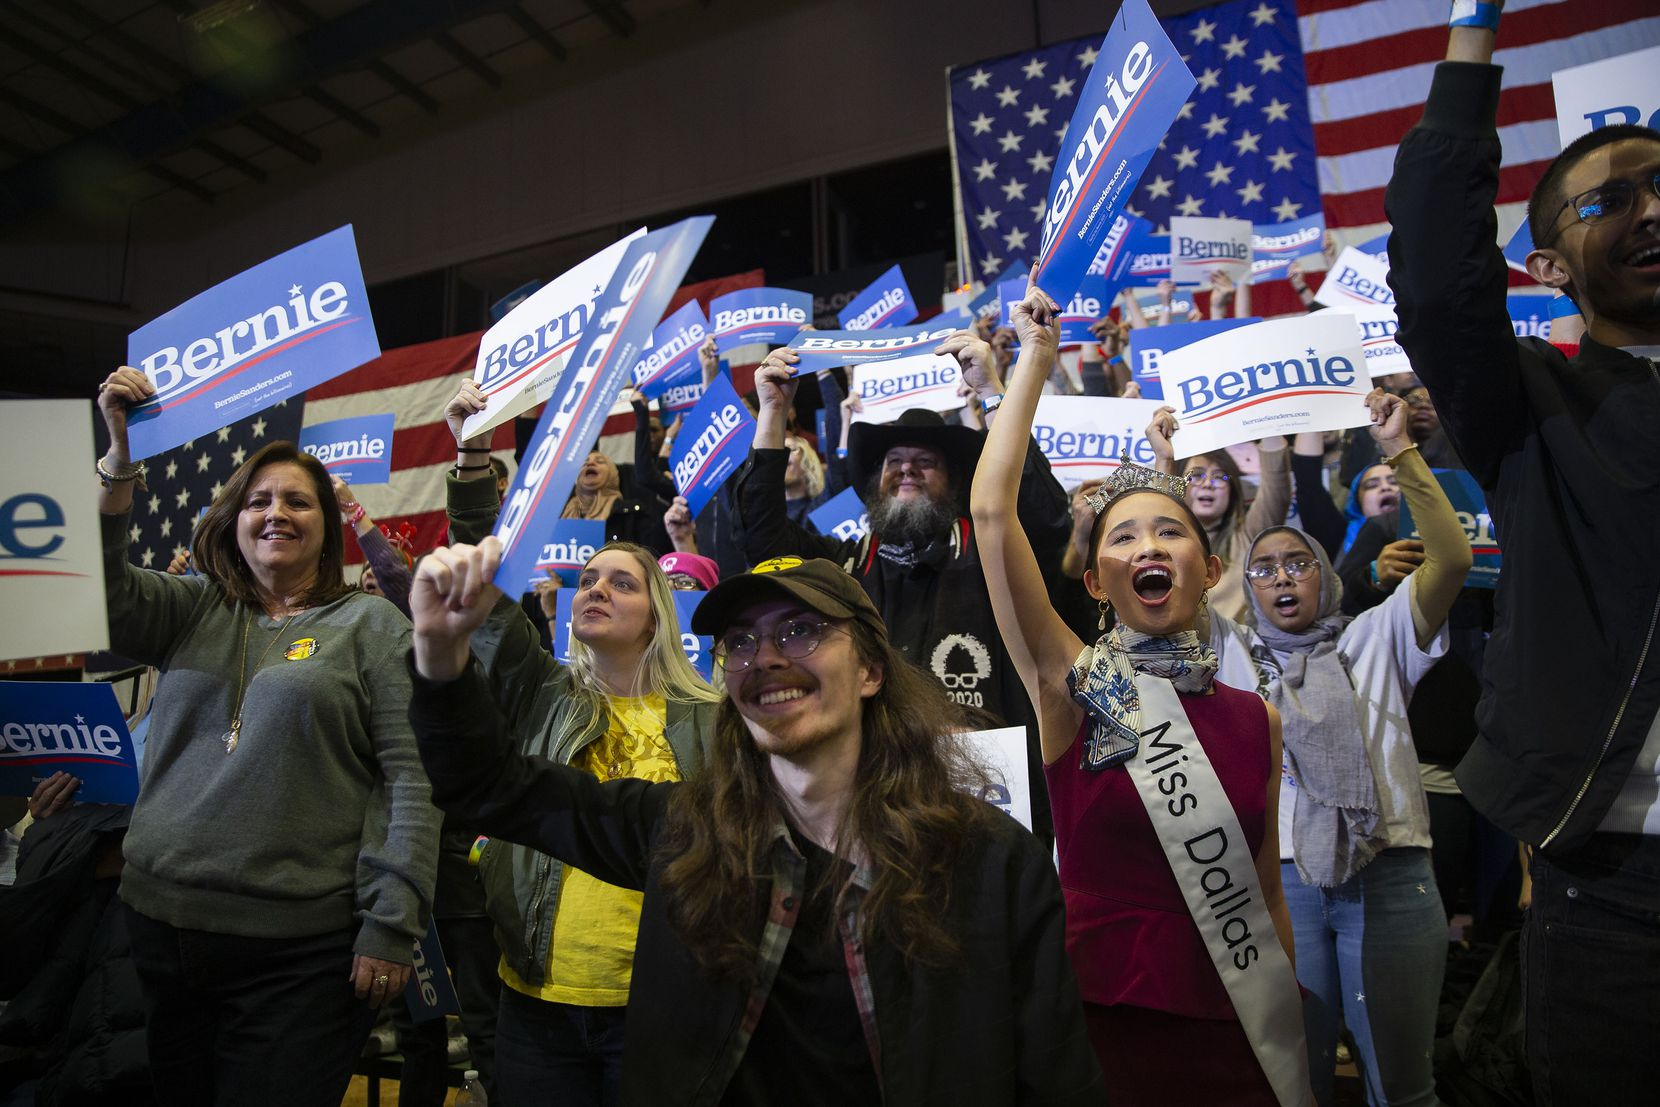 Fans -- including SMU law student Averie Bishop, right, who is Miss Dallas 2020 -- cheer as Democratic presidential candidate Bernie Sanders, I-Vt., holds a Valentine's Day rally at the Mesquite Arena on Feb. 14, 2020 in Mesquite, Texas.